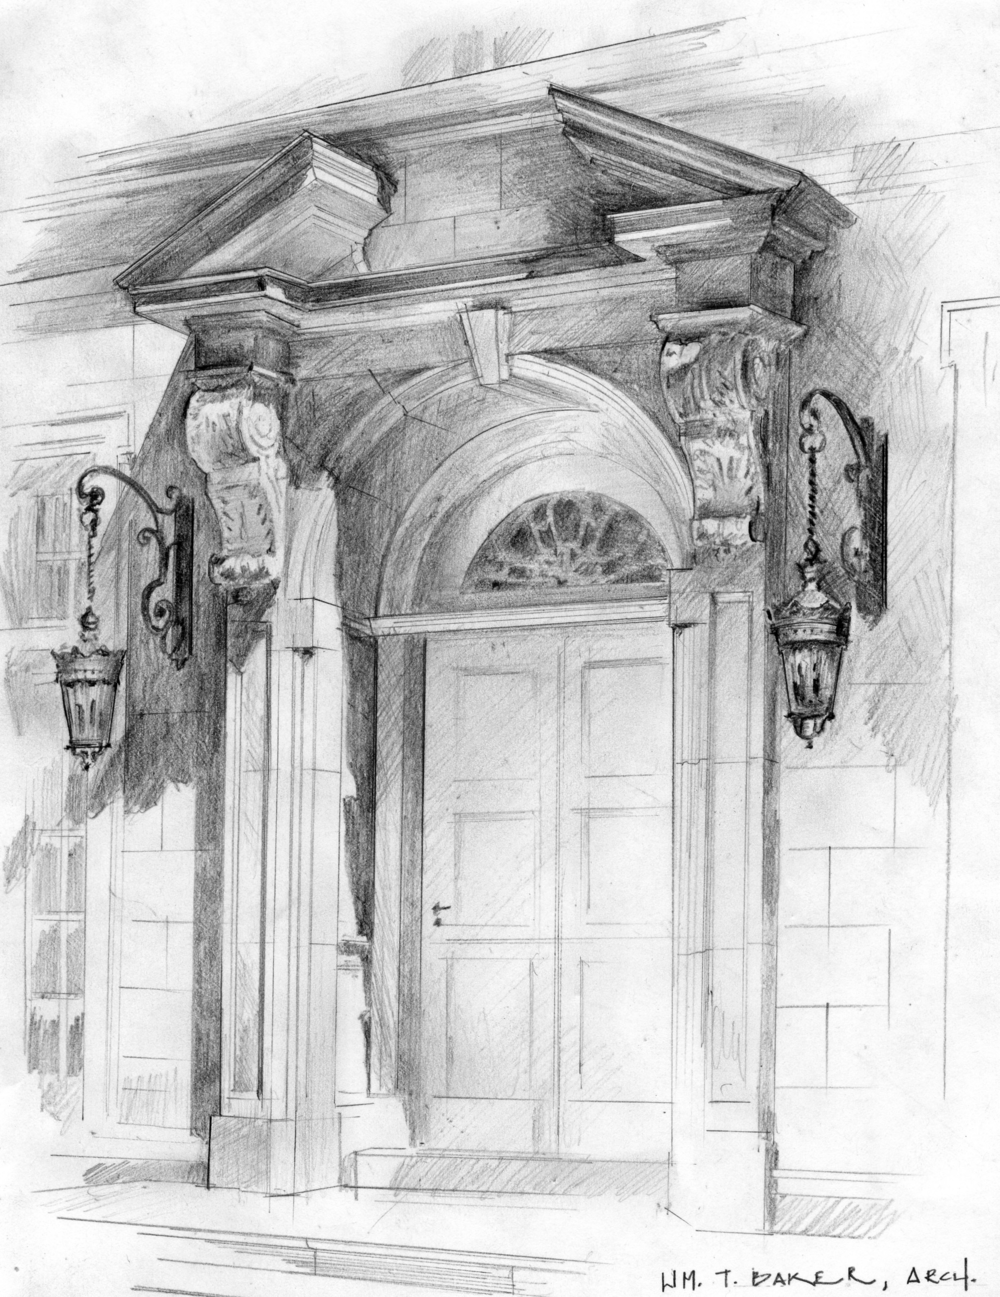 Arch Rendering - Limestone Chateau, William T. Baker